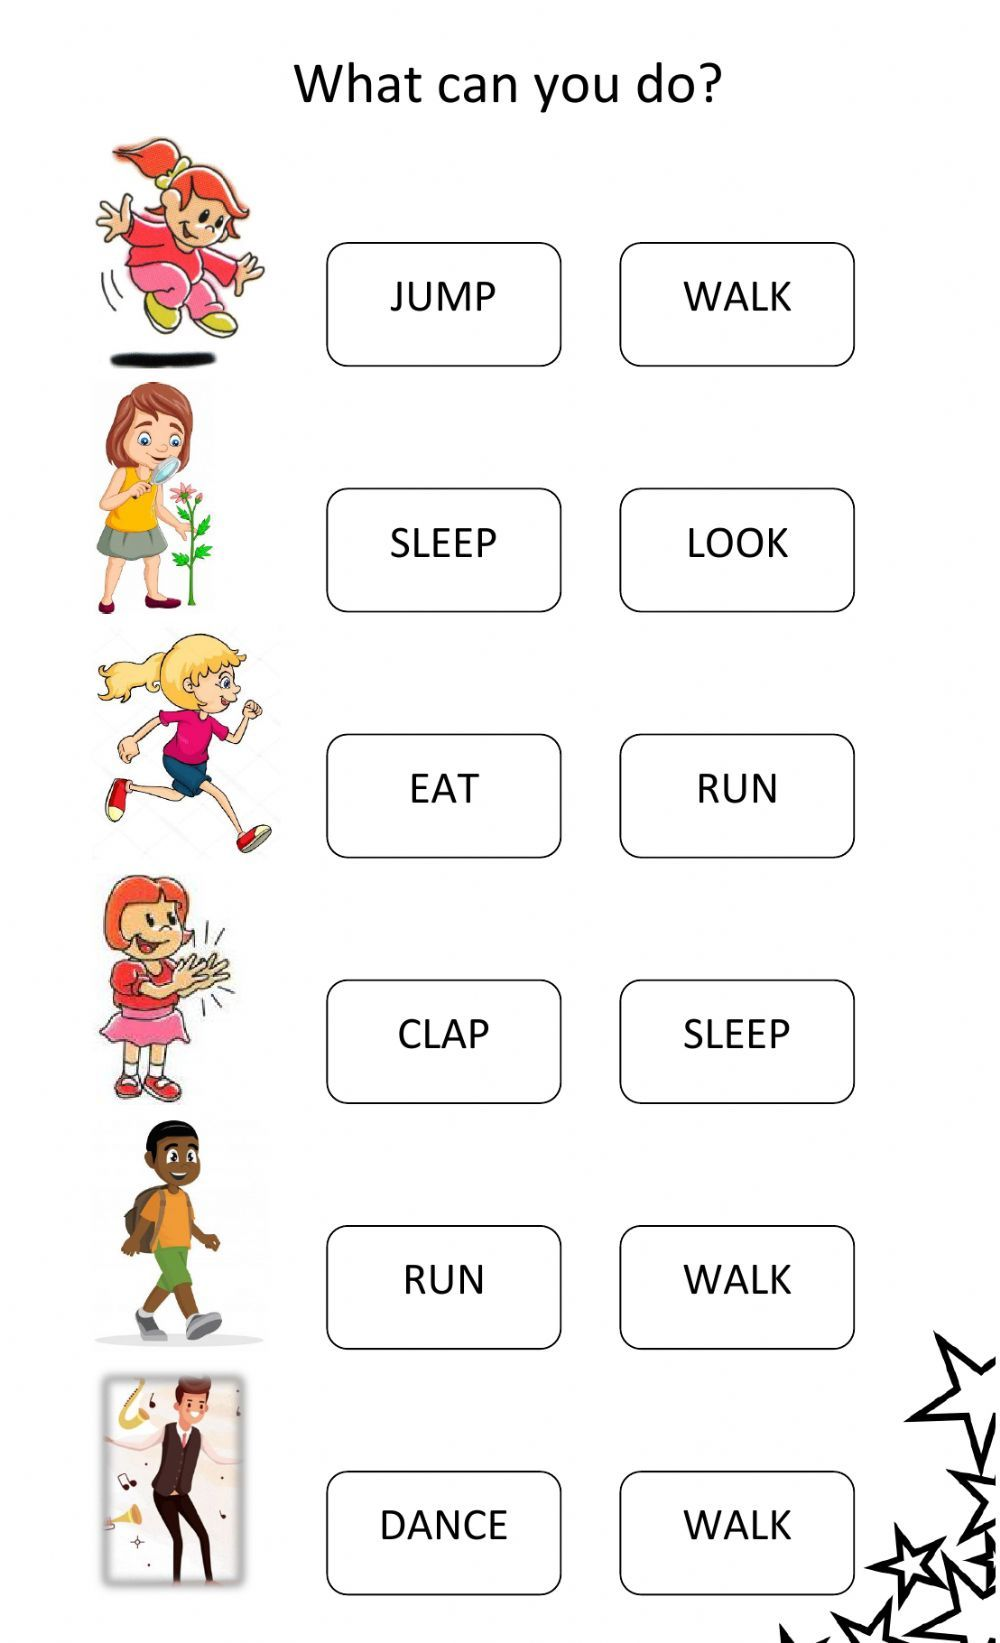 Action Verbs Online Activity For Inicial You Can Do The Exercises Online Or Down In 2021 English Lessons For Kids English Activities For Kids English Classes For Kids